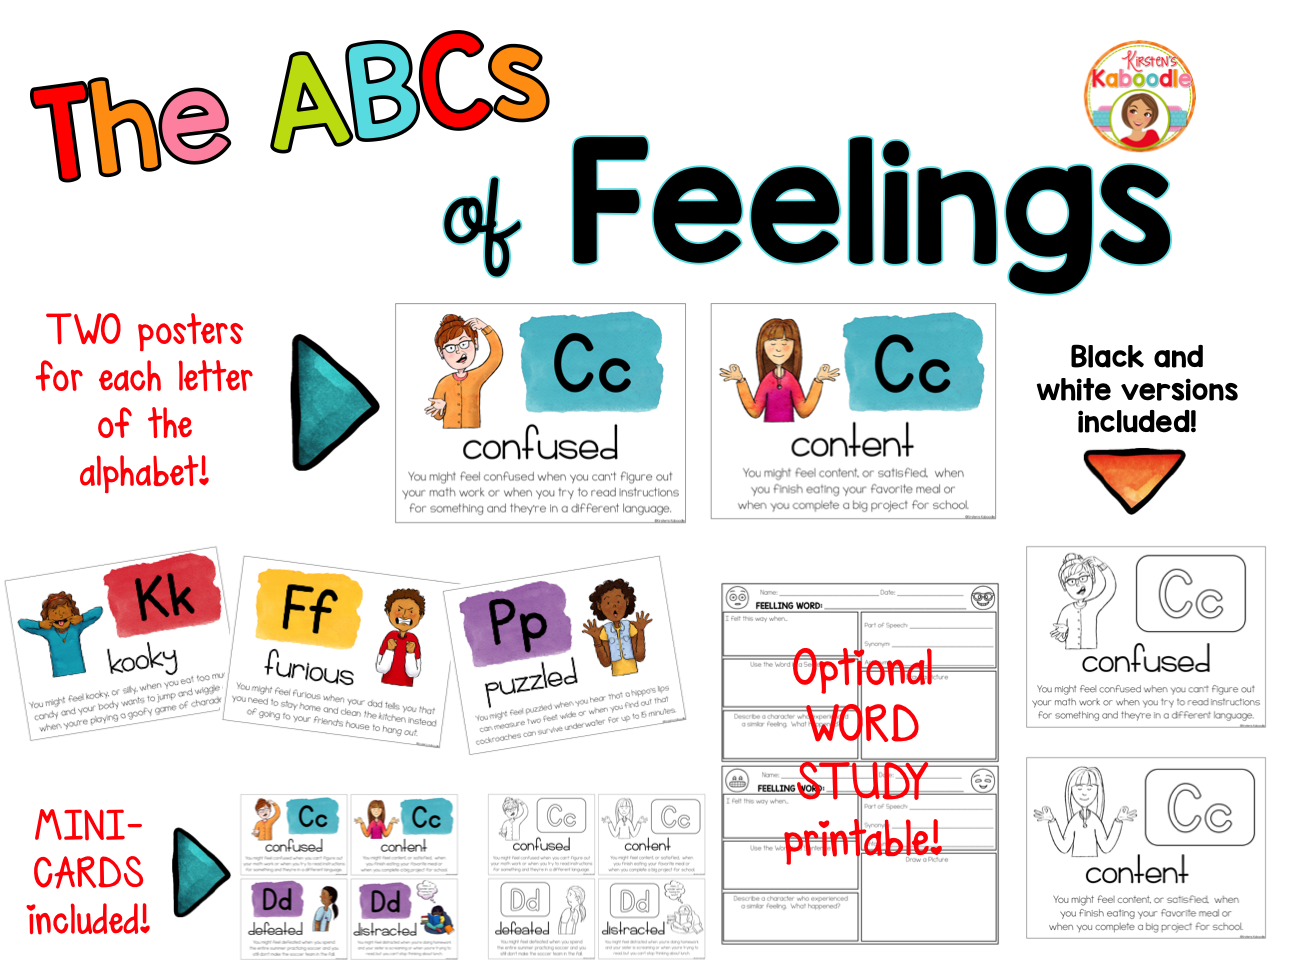 Feelings Posters - The ABCs of Feelings